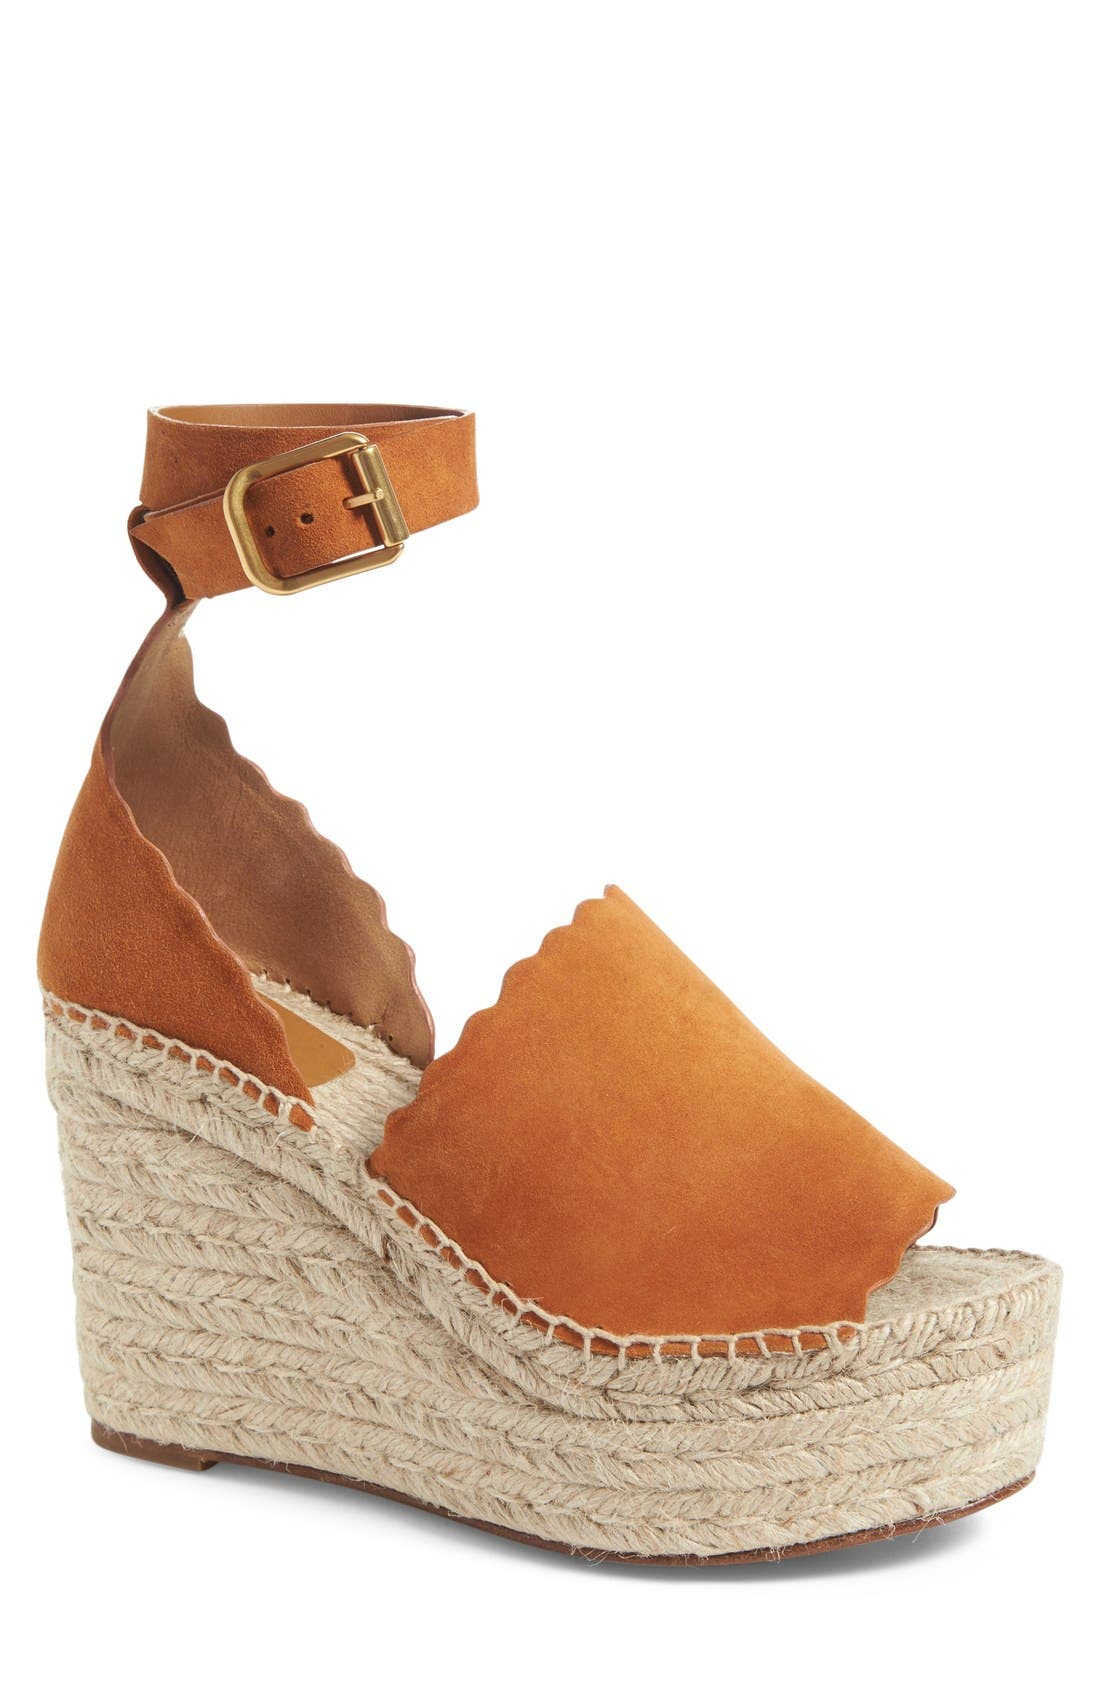 Lauren Espadrille Wedge Sandal,                             Main thumbnail 2, color,